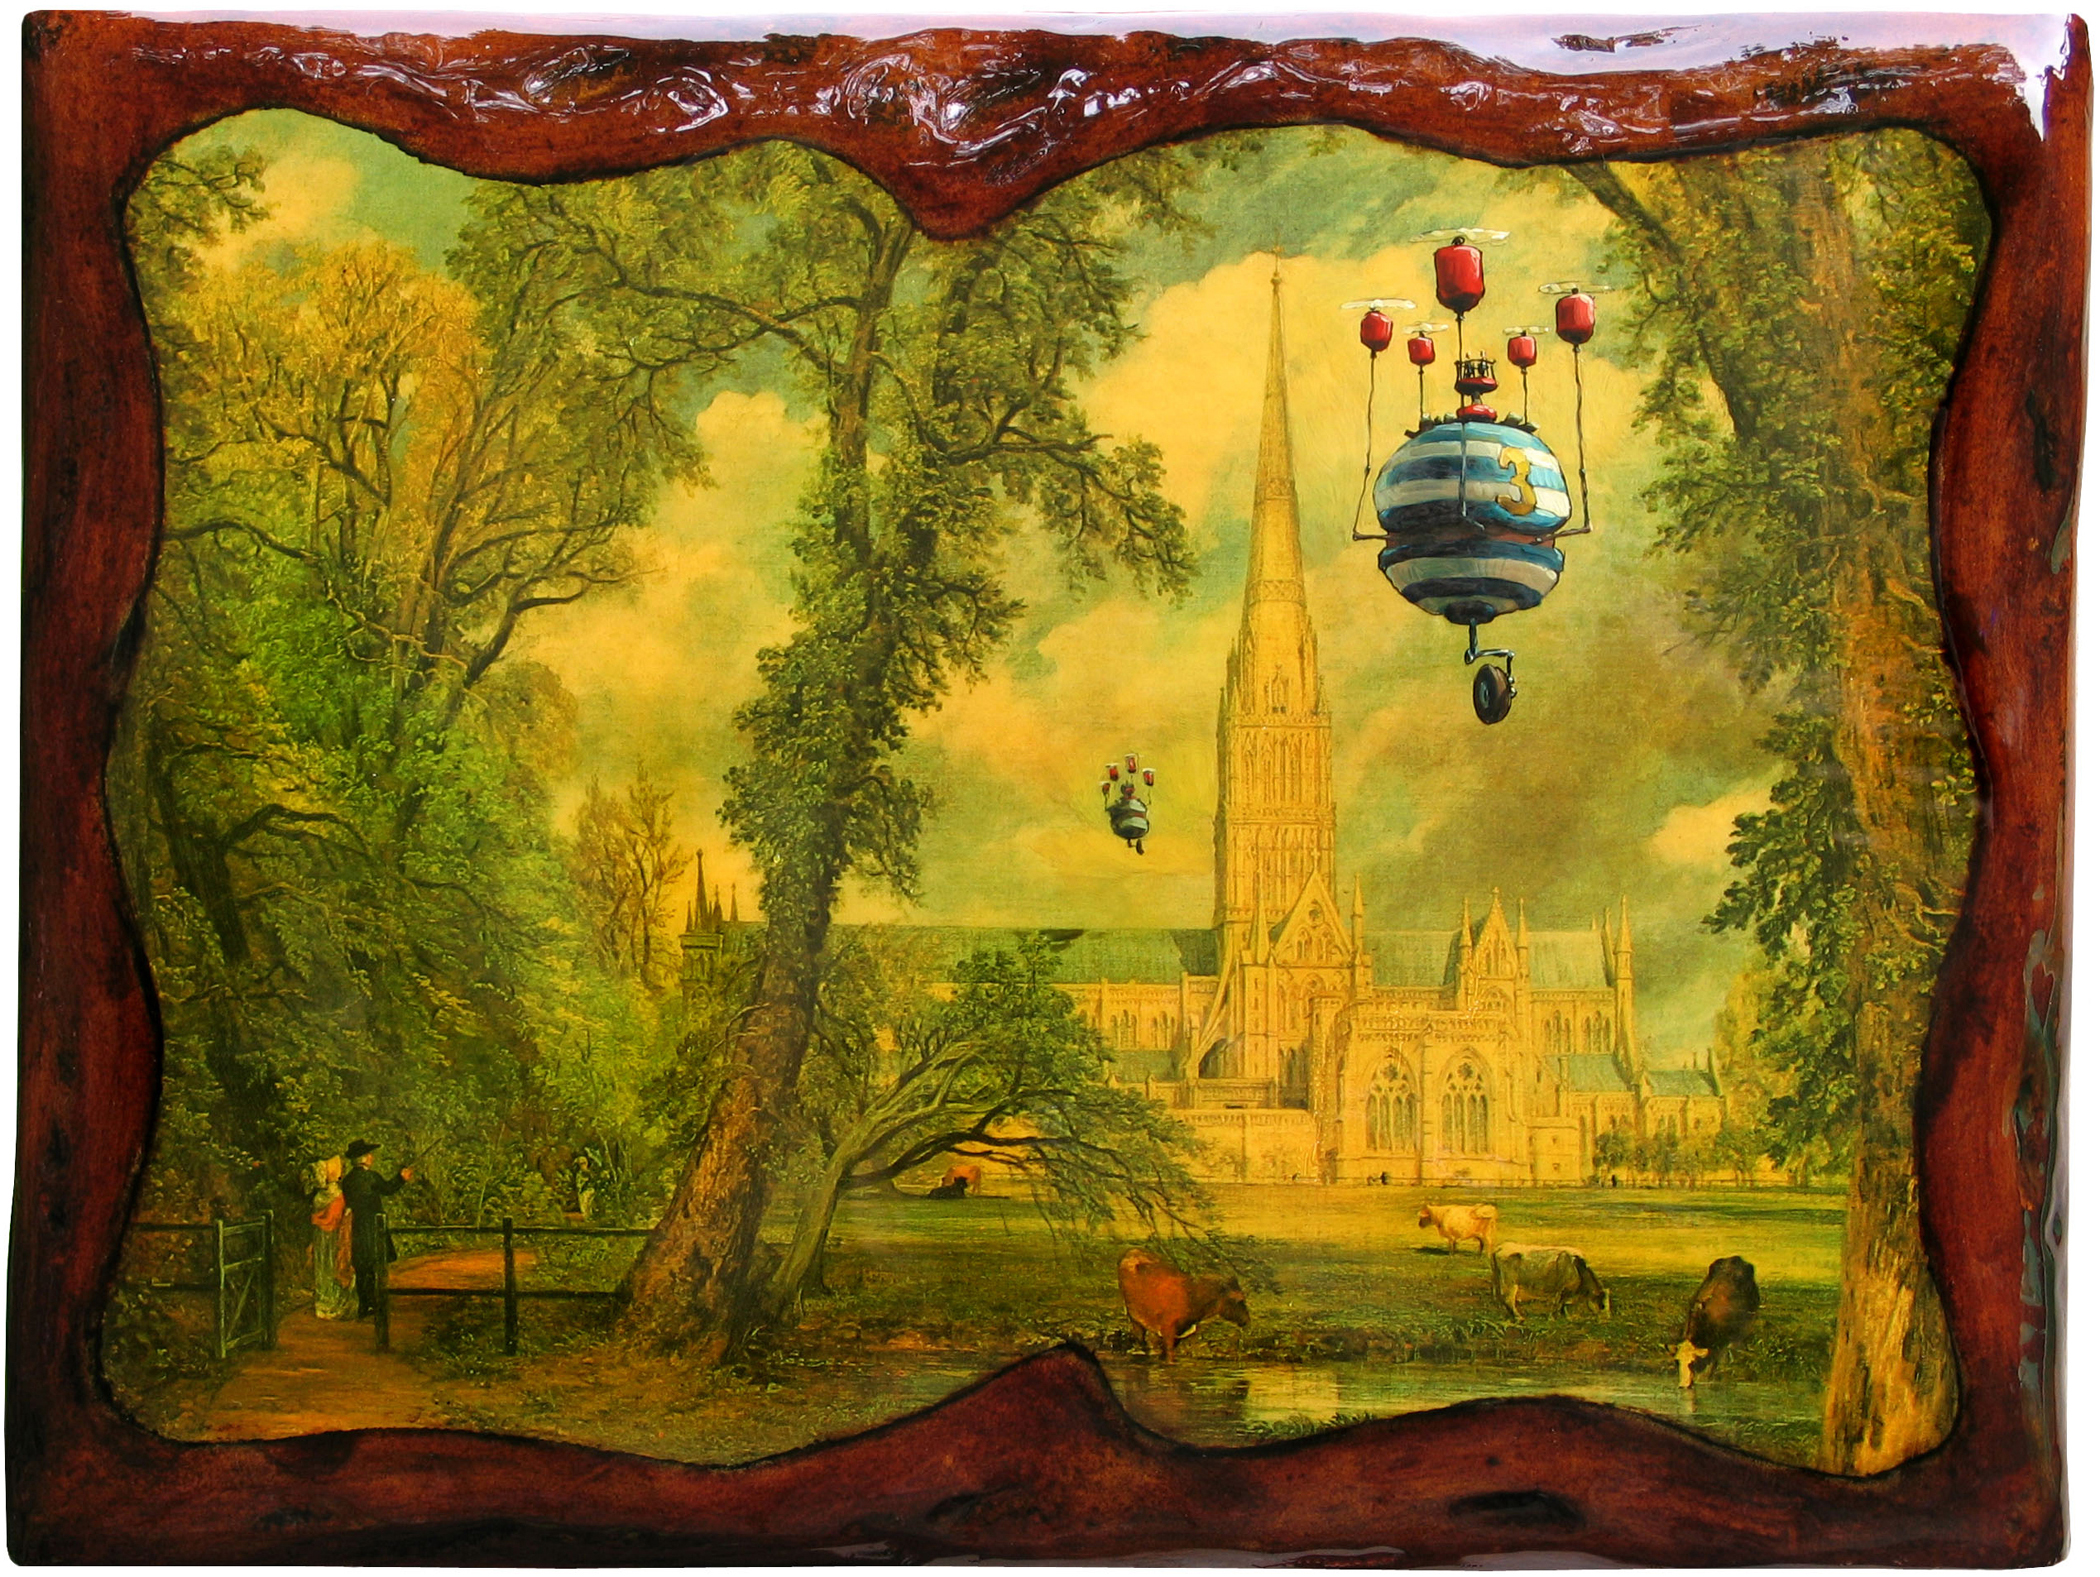 """Salisbury's Visitors   12"""" wide. Oil on a paper art print laminated to wood, 2009.  $150.  Buy this painting."""